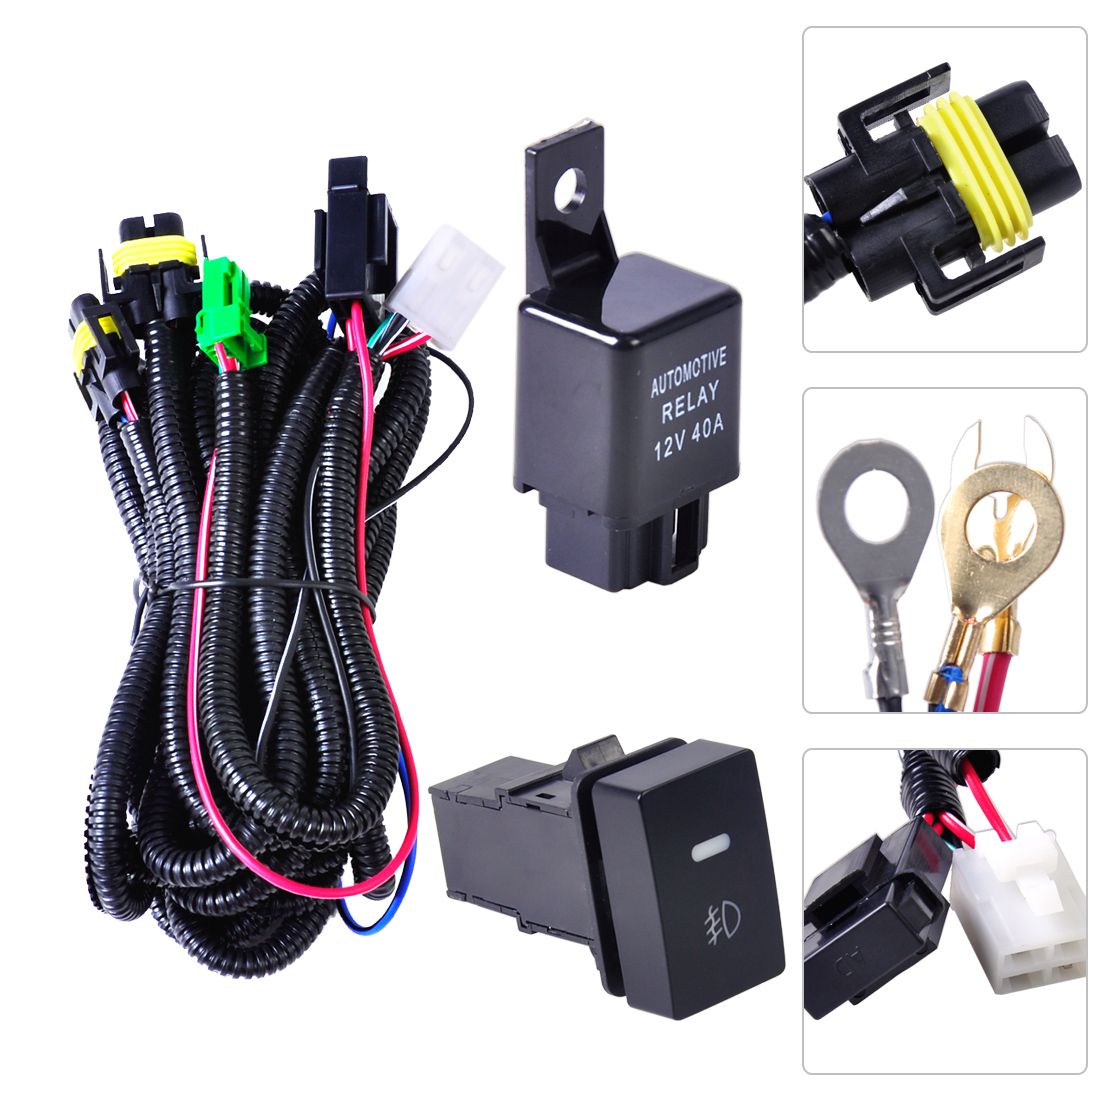 For Ford Focus Acura Nissan Wiring Harness Sockets Switch H11 Wire Product Photo Show